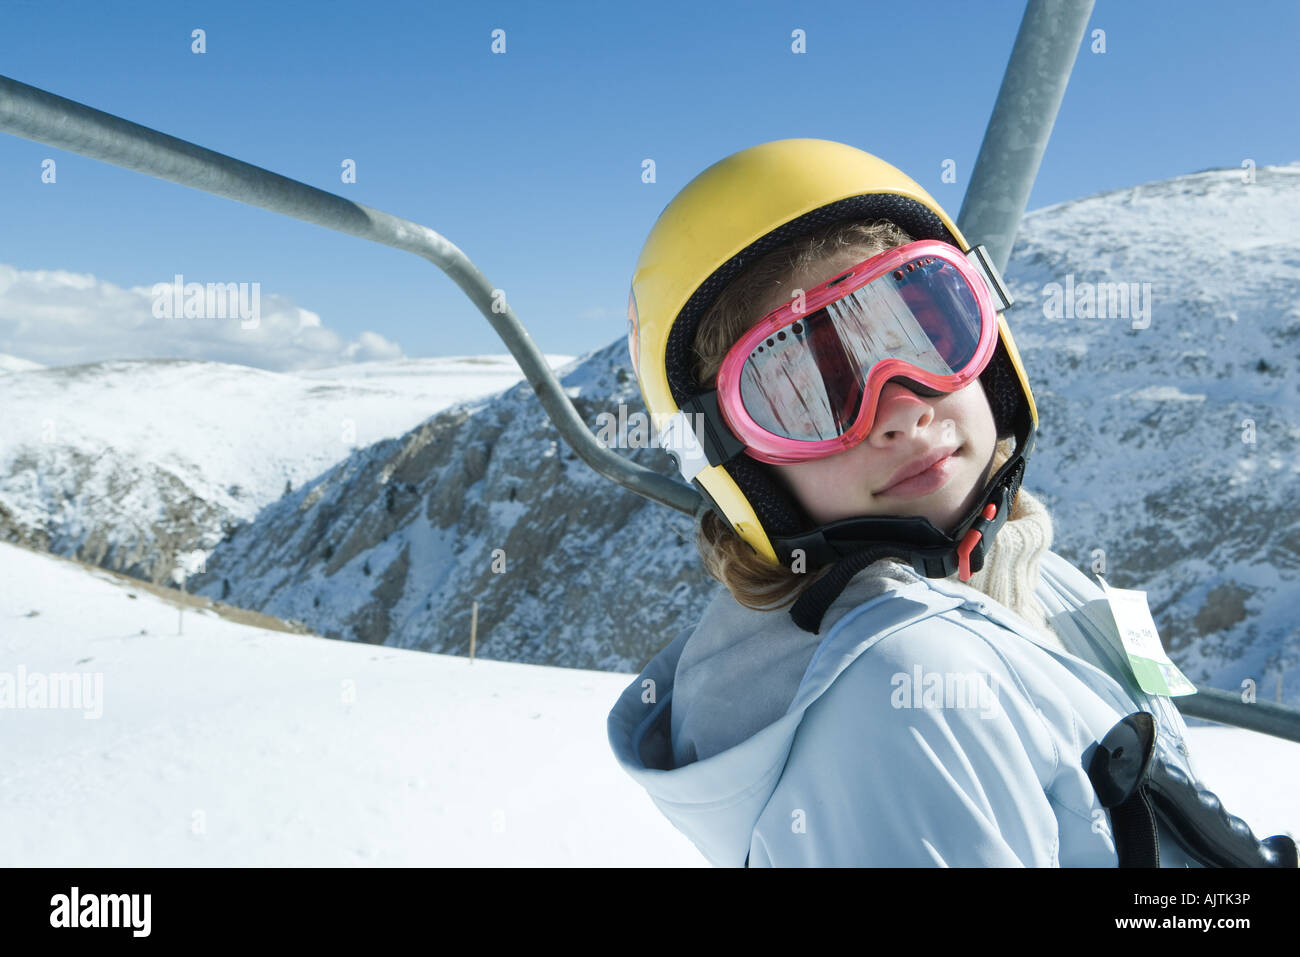 Teenage girl on ski lift, wearing goggles and helmet, looking at camera, portrait - Stock Image